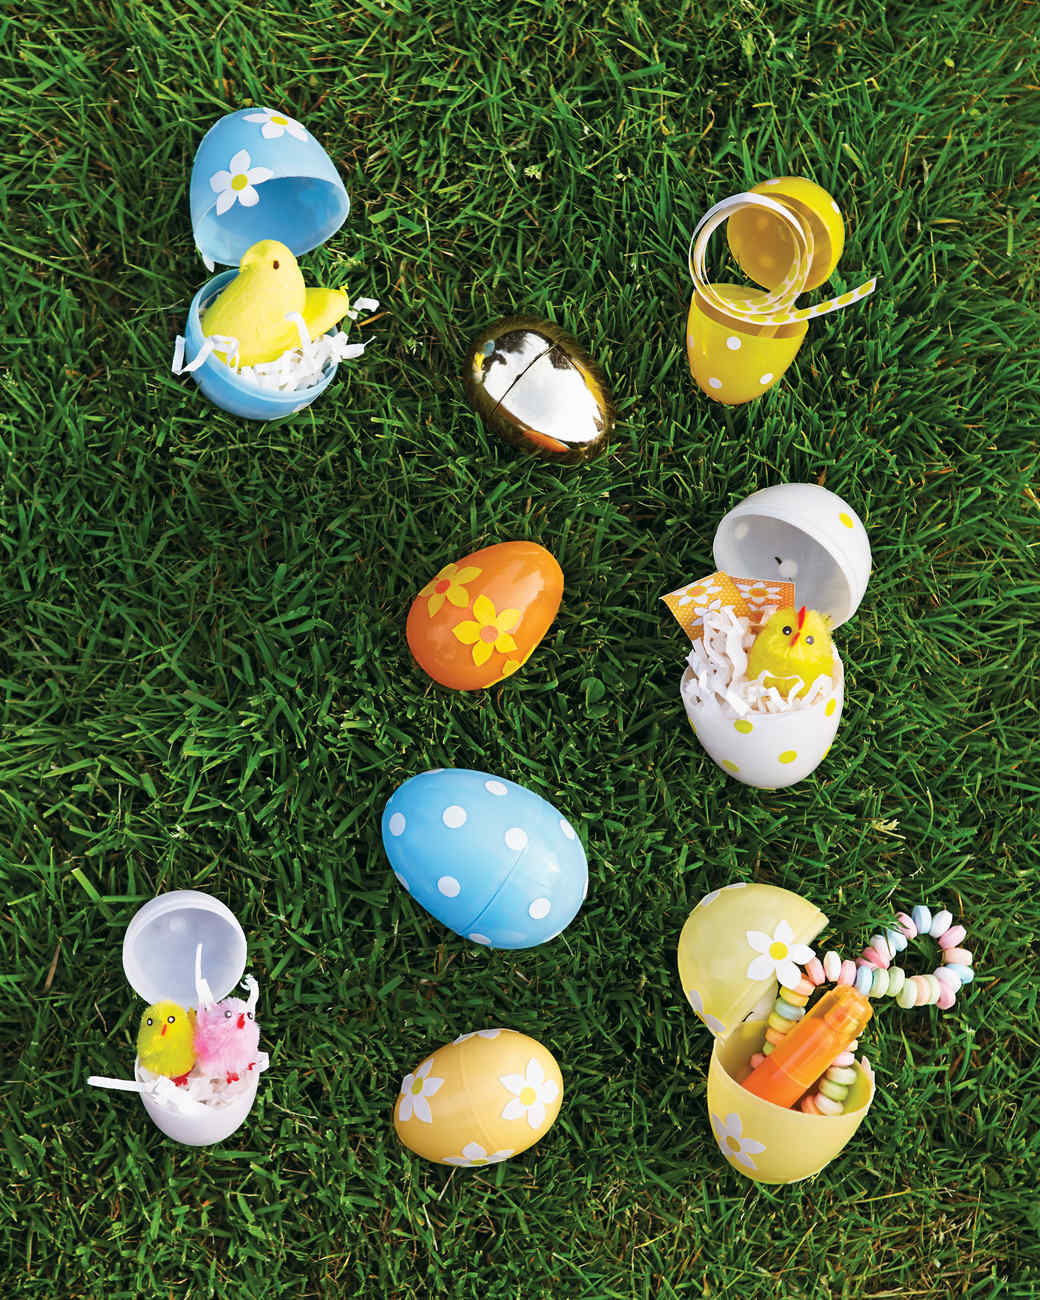 Easter egg hunt martha stewart for Easter egg ideas